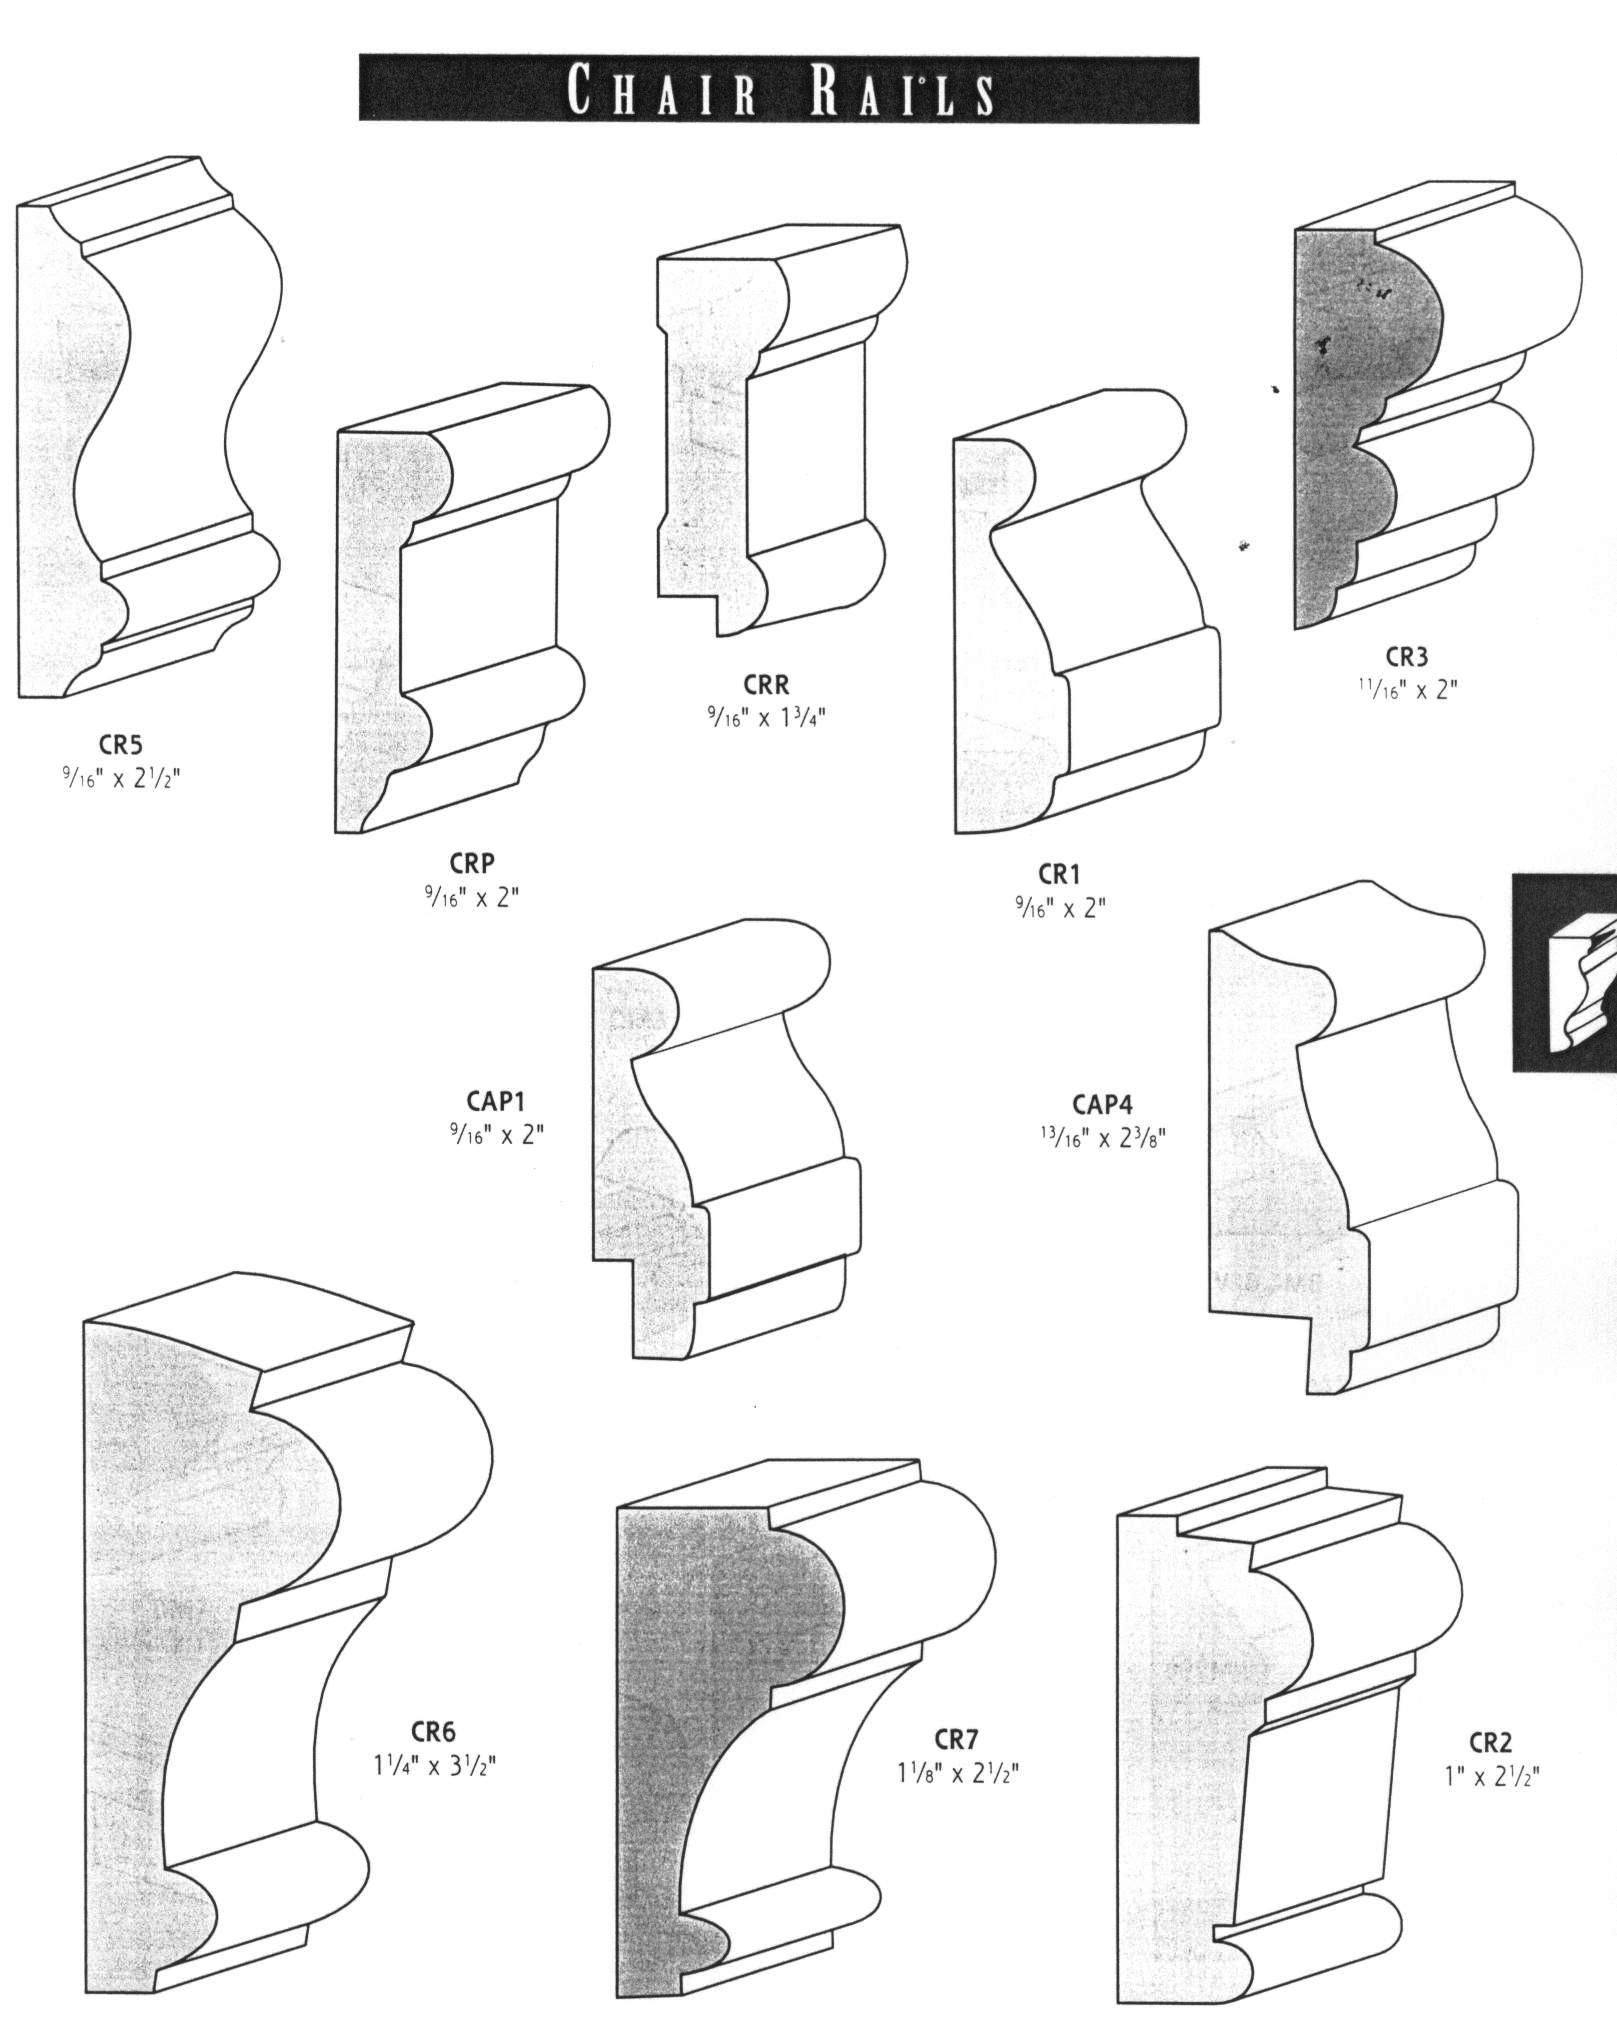 chair rail molding profiles fisher price space saver different types of home decor pinterest